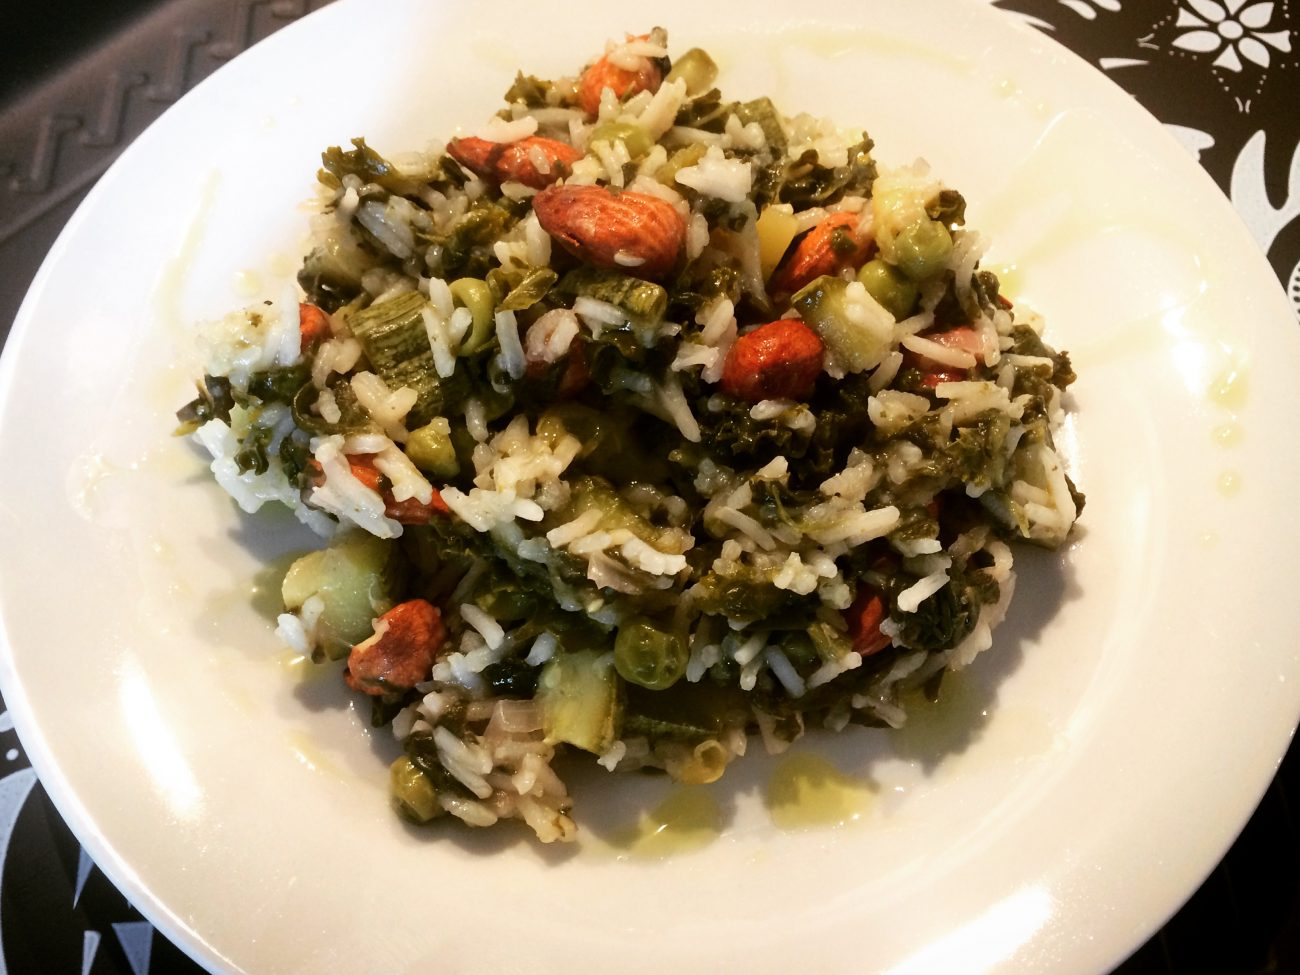 Basmati rice with greens and almonds